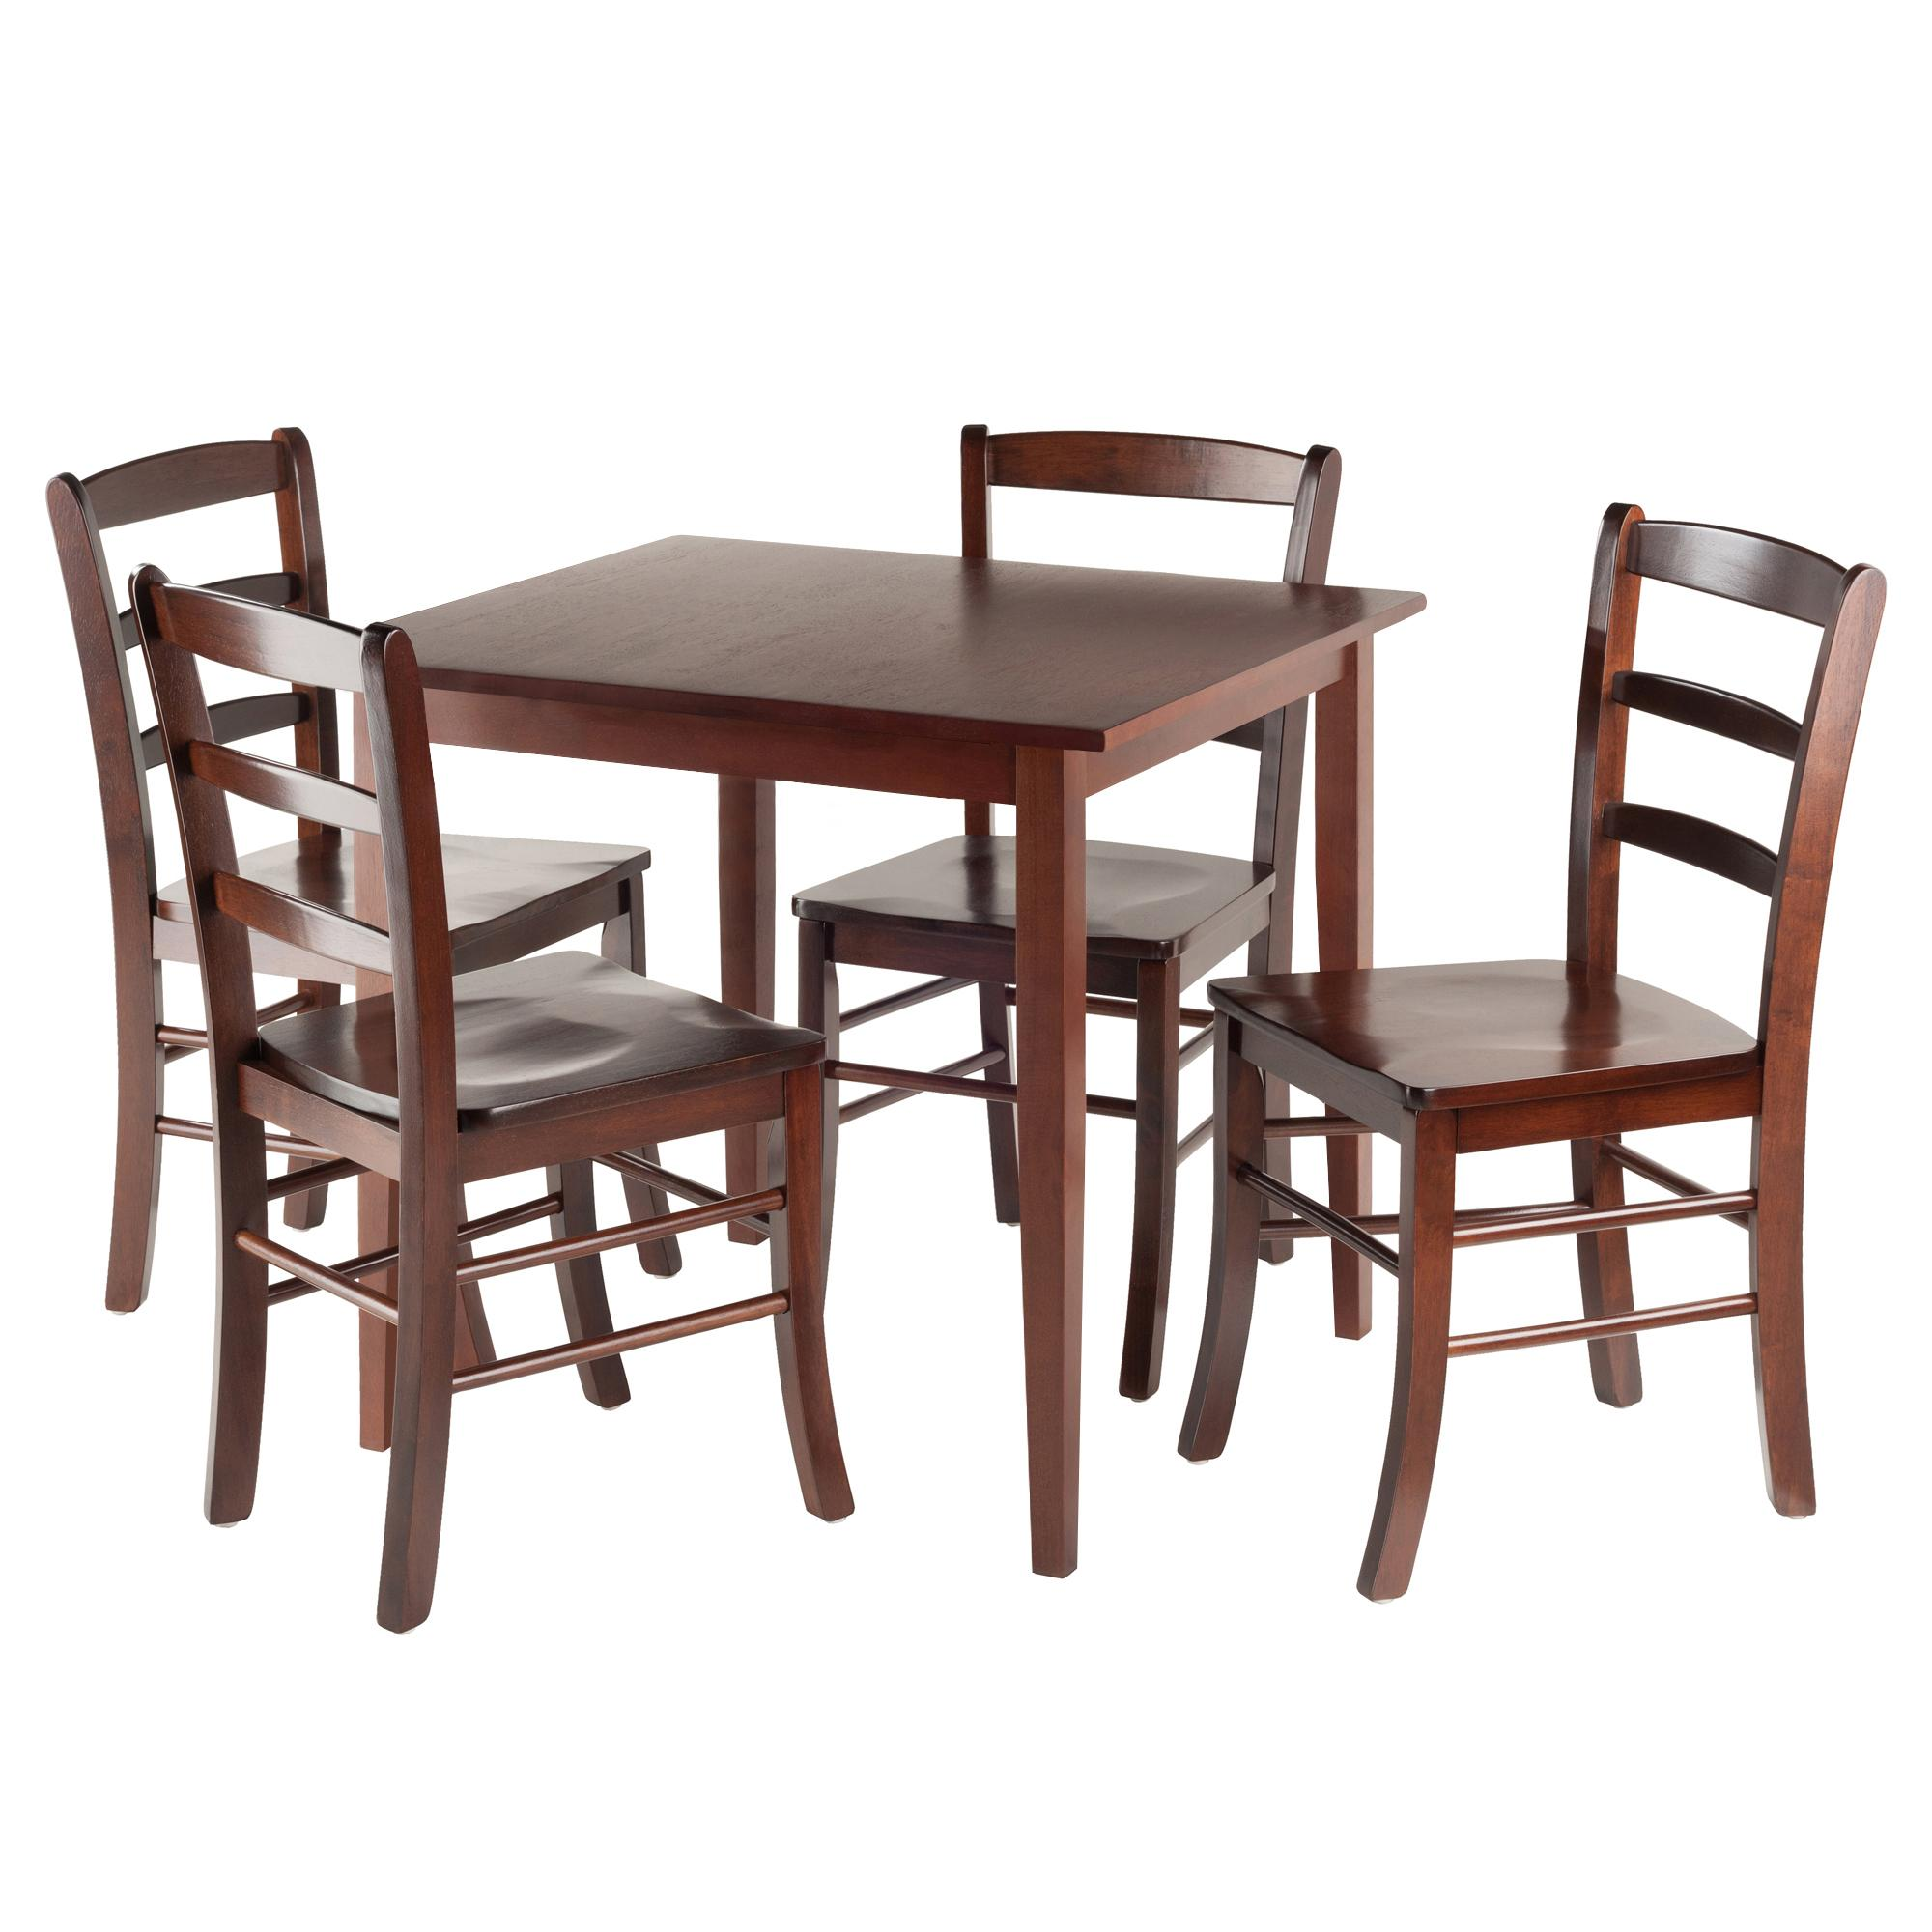 Amazon Winsome Groveland Square Dining Table with 4 chairs